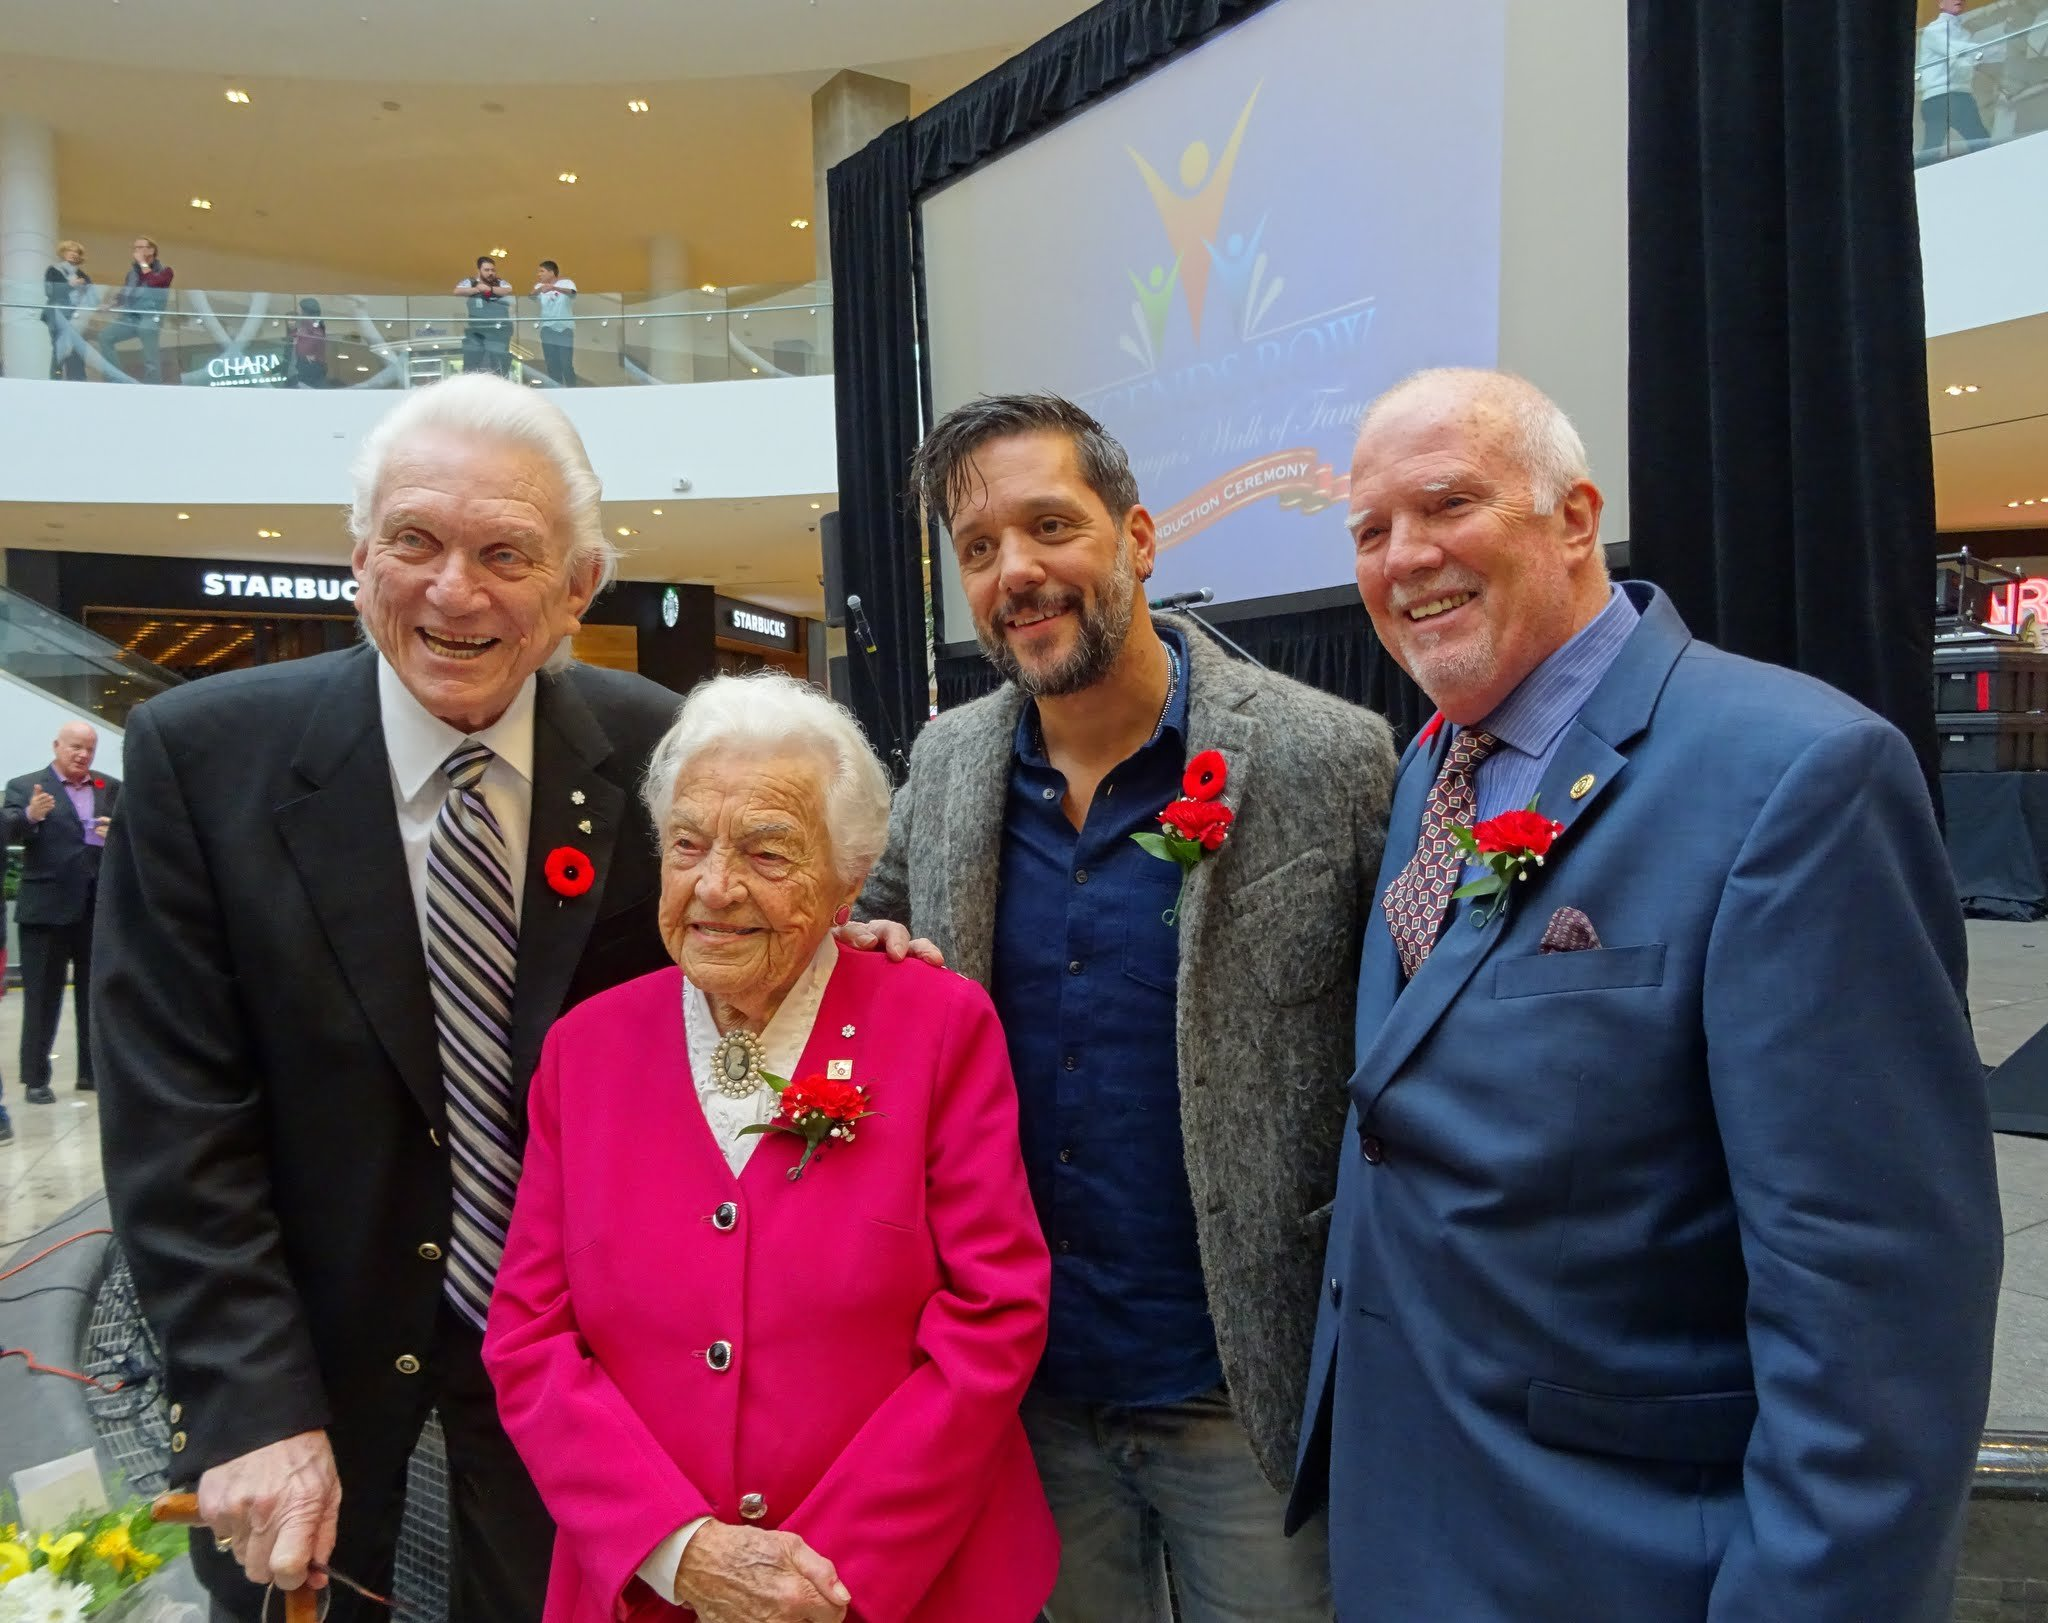 Legends Tommy Hunter, Hazel McCallion, George Stroumbouloulopoulos with Ron Duquette, President and Founder of Mississauga's Legends Row, Photo by I Lee, 4 Nov 2017